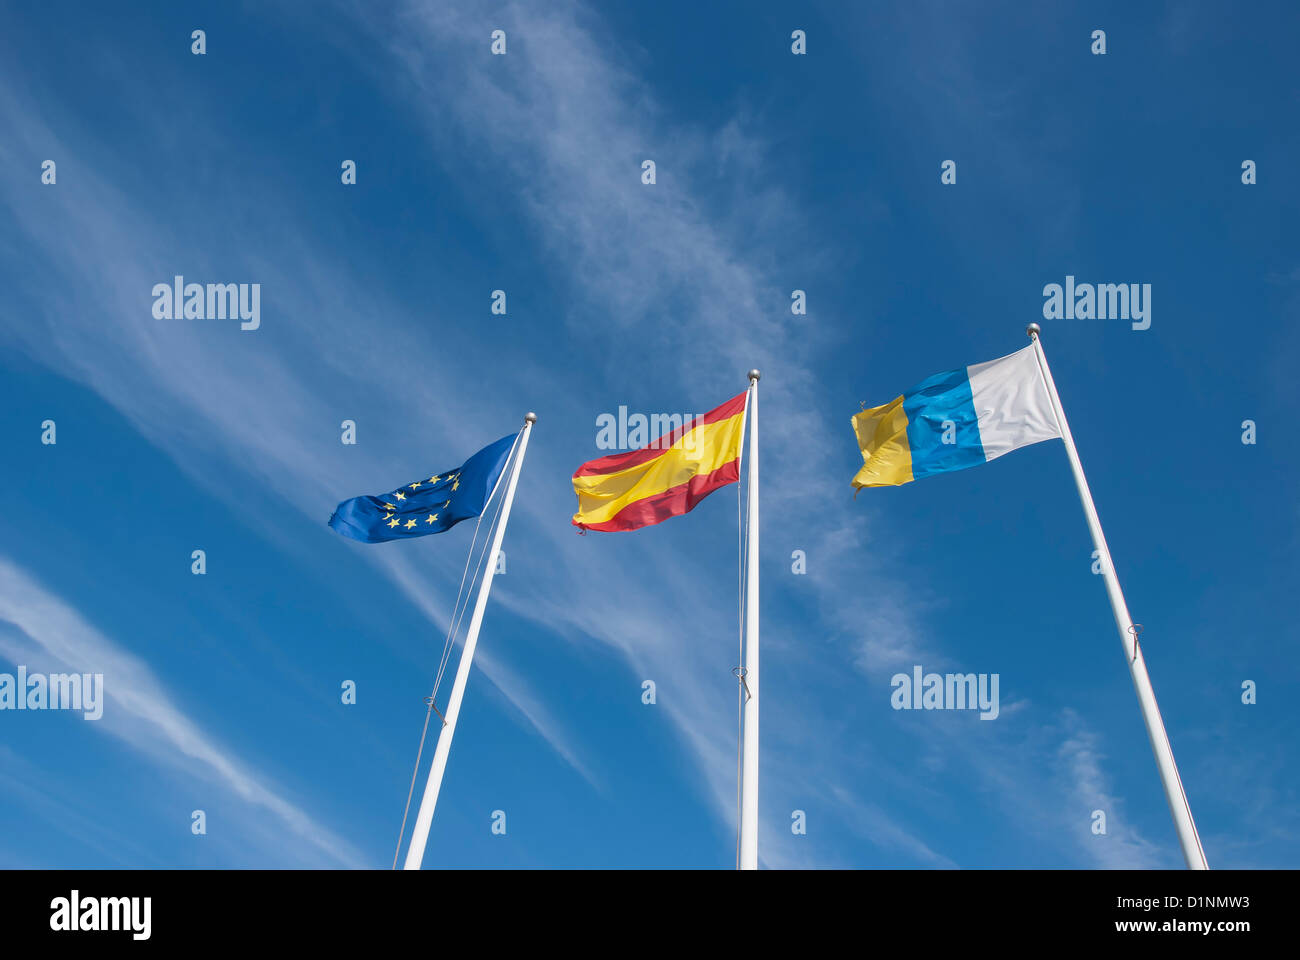 The Flags of the European Union,Spain and the Canary Islands under a blue sky Stock Photo